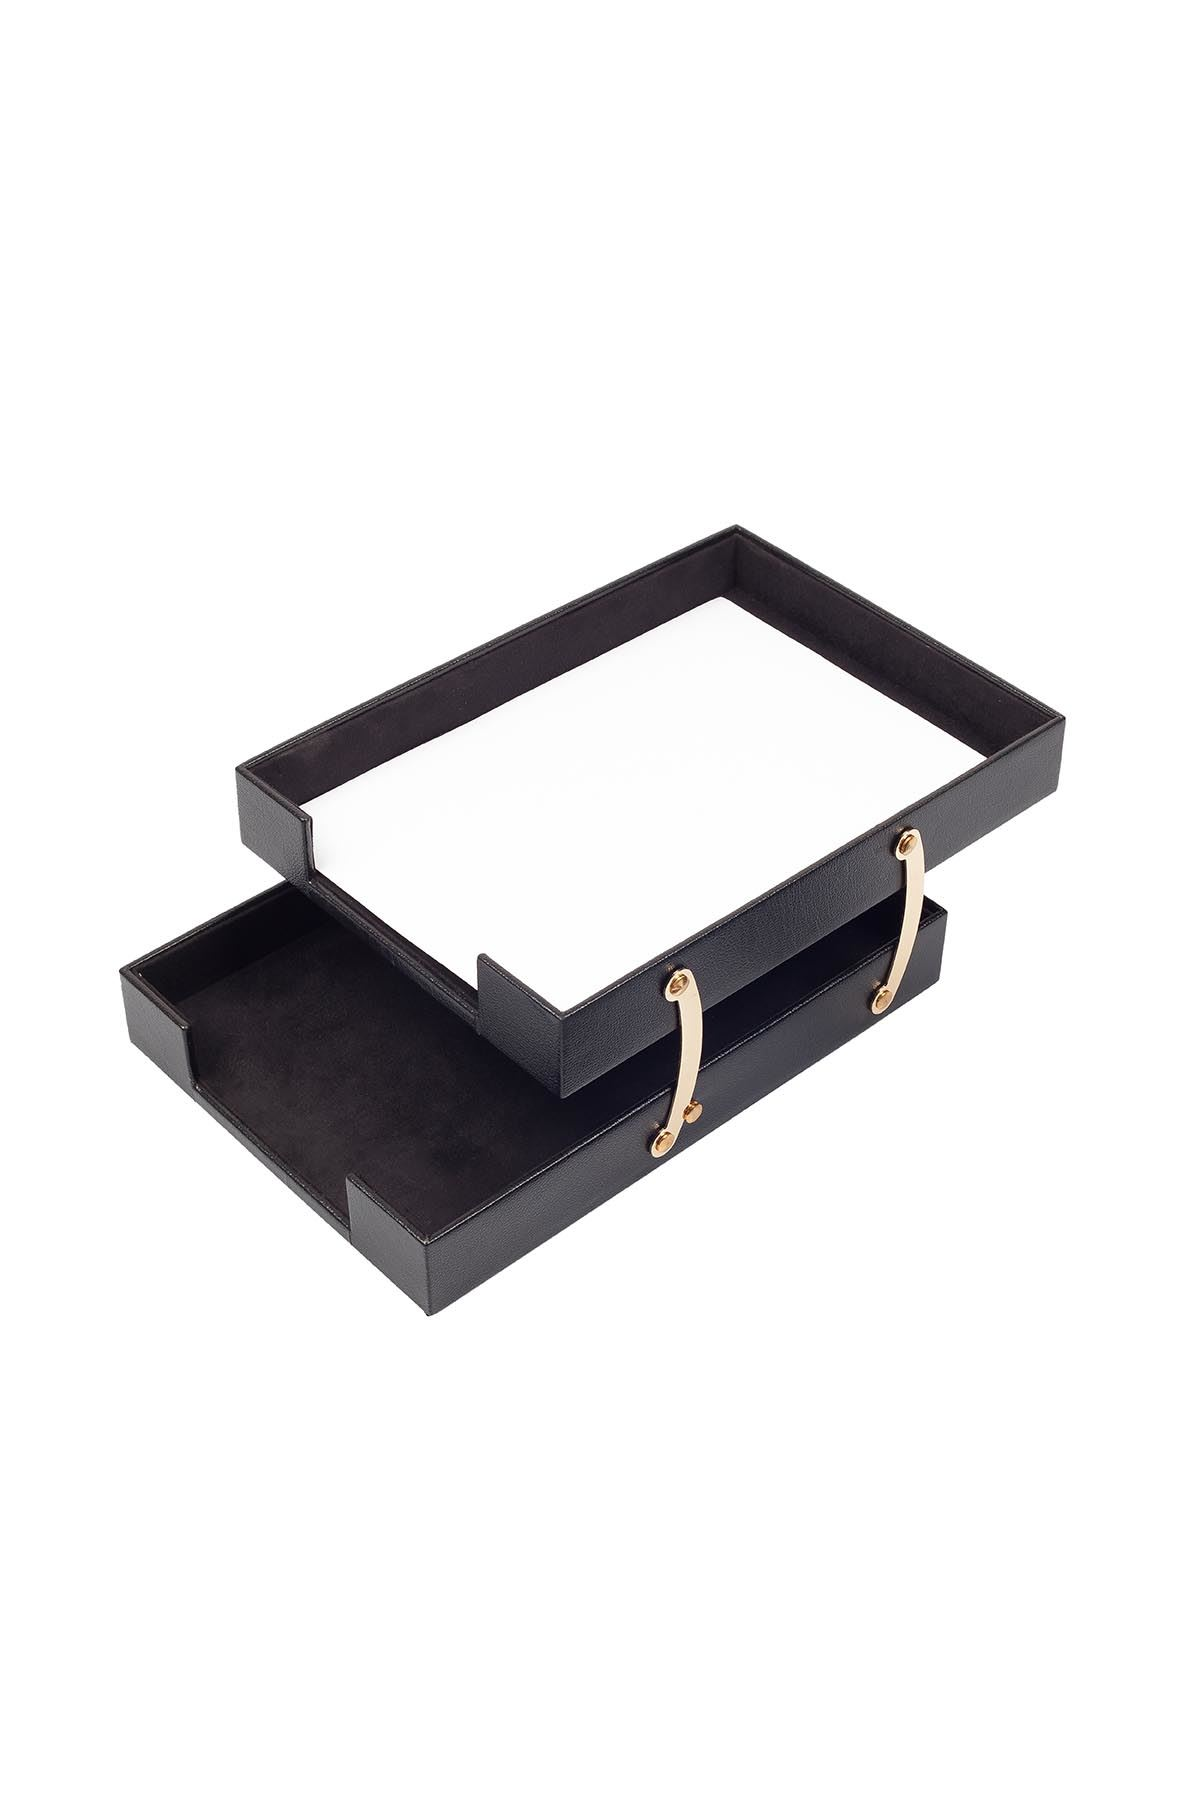 Double Document Tray Black| Leather Document Organizer | Leather Foldable Tray | Leather Organizer | Double Document Shelves